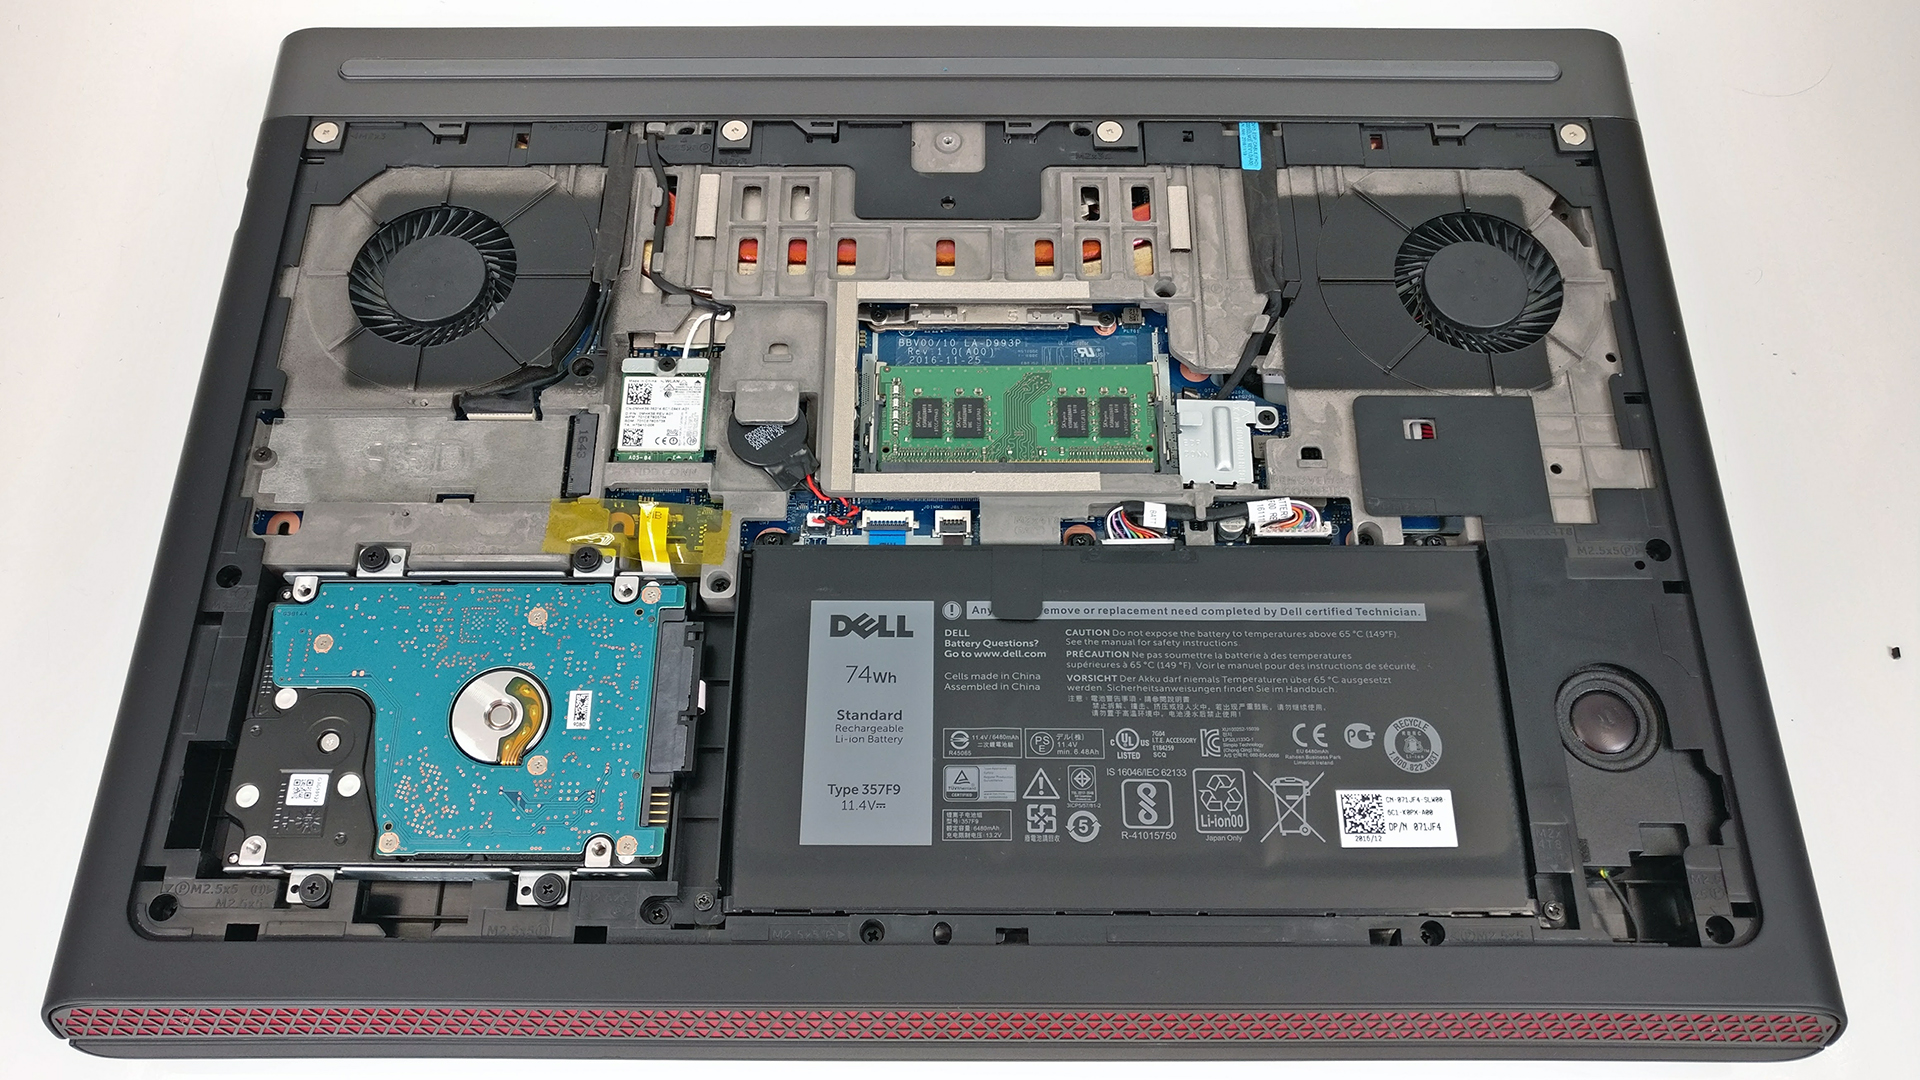 Inside Dell Inspiron 15 7567 – disassembly, internal photos